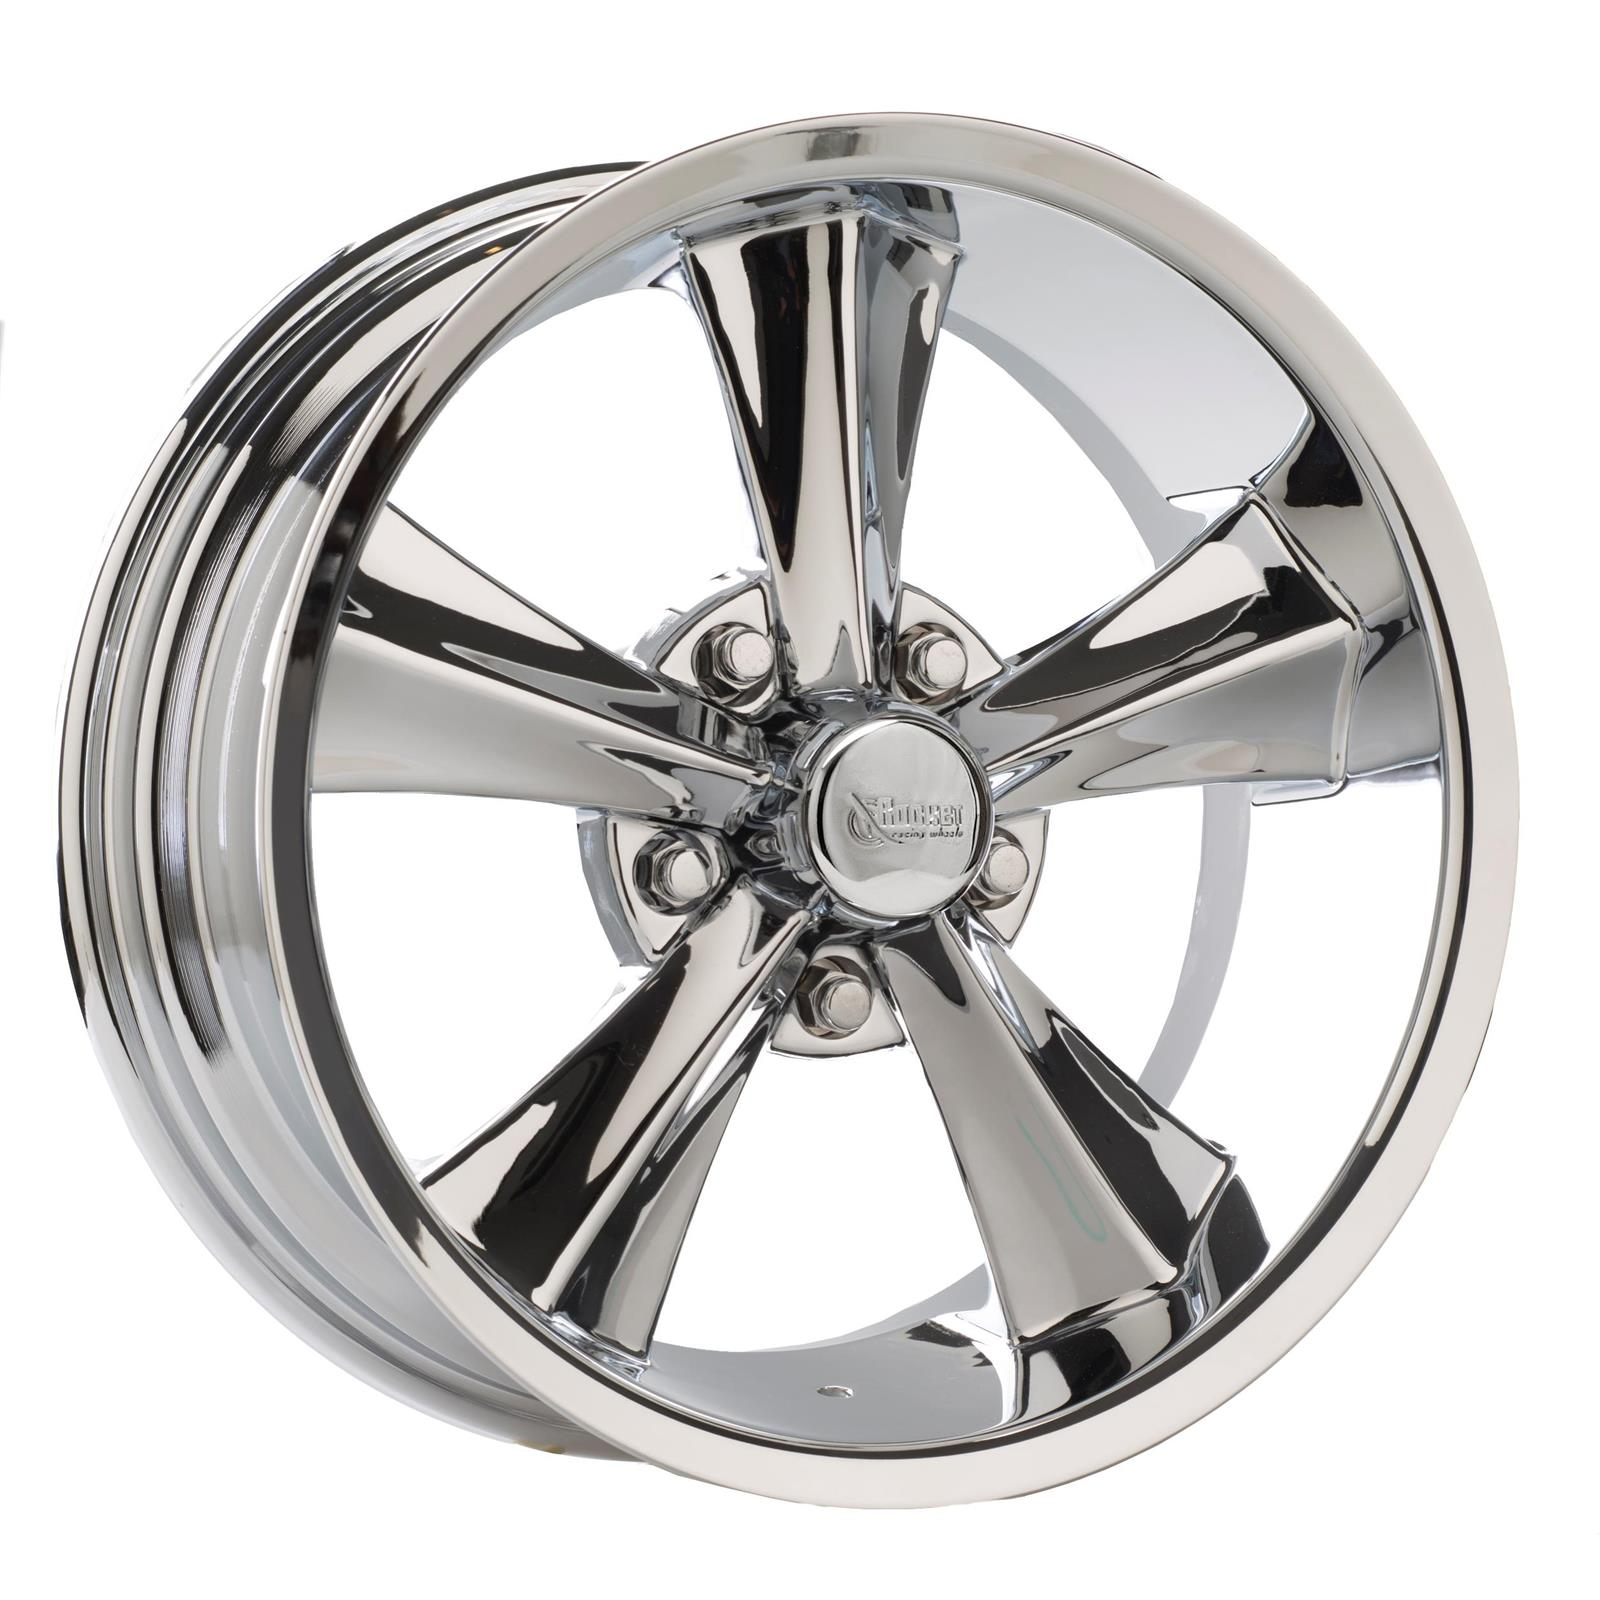 Rocket Racing R14-777342 Booster  17 x 7 Wheel, 5 x 5, 4-1/4 BS